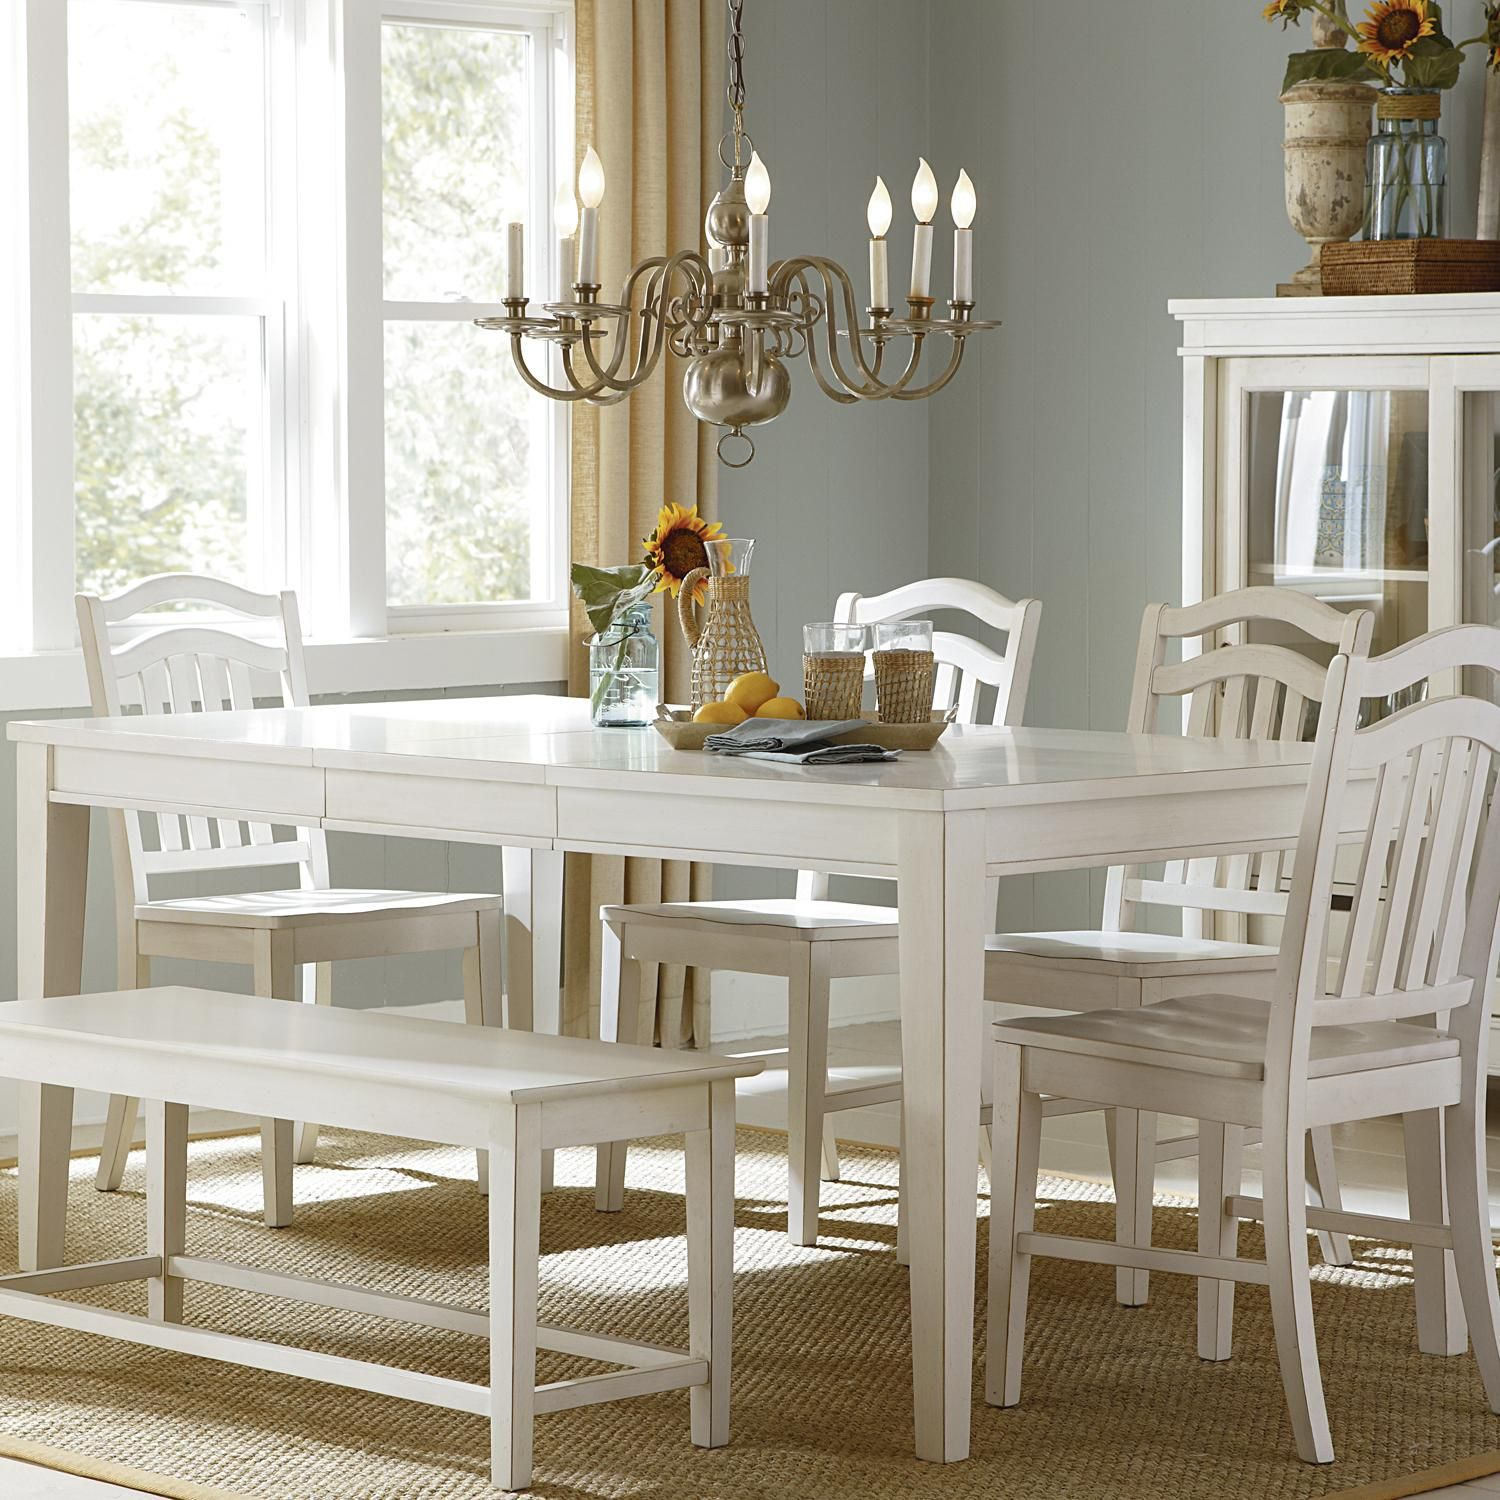 Summerhill Rectangular Leg Table By Liberty Furniture Available At Darvin